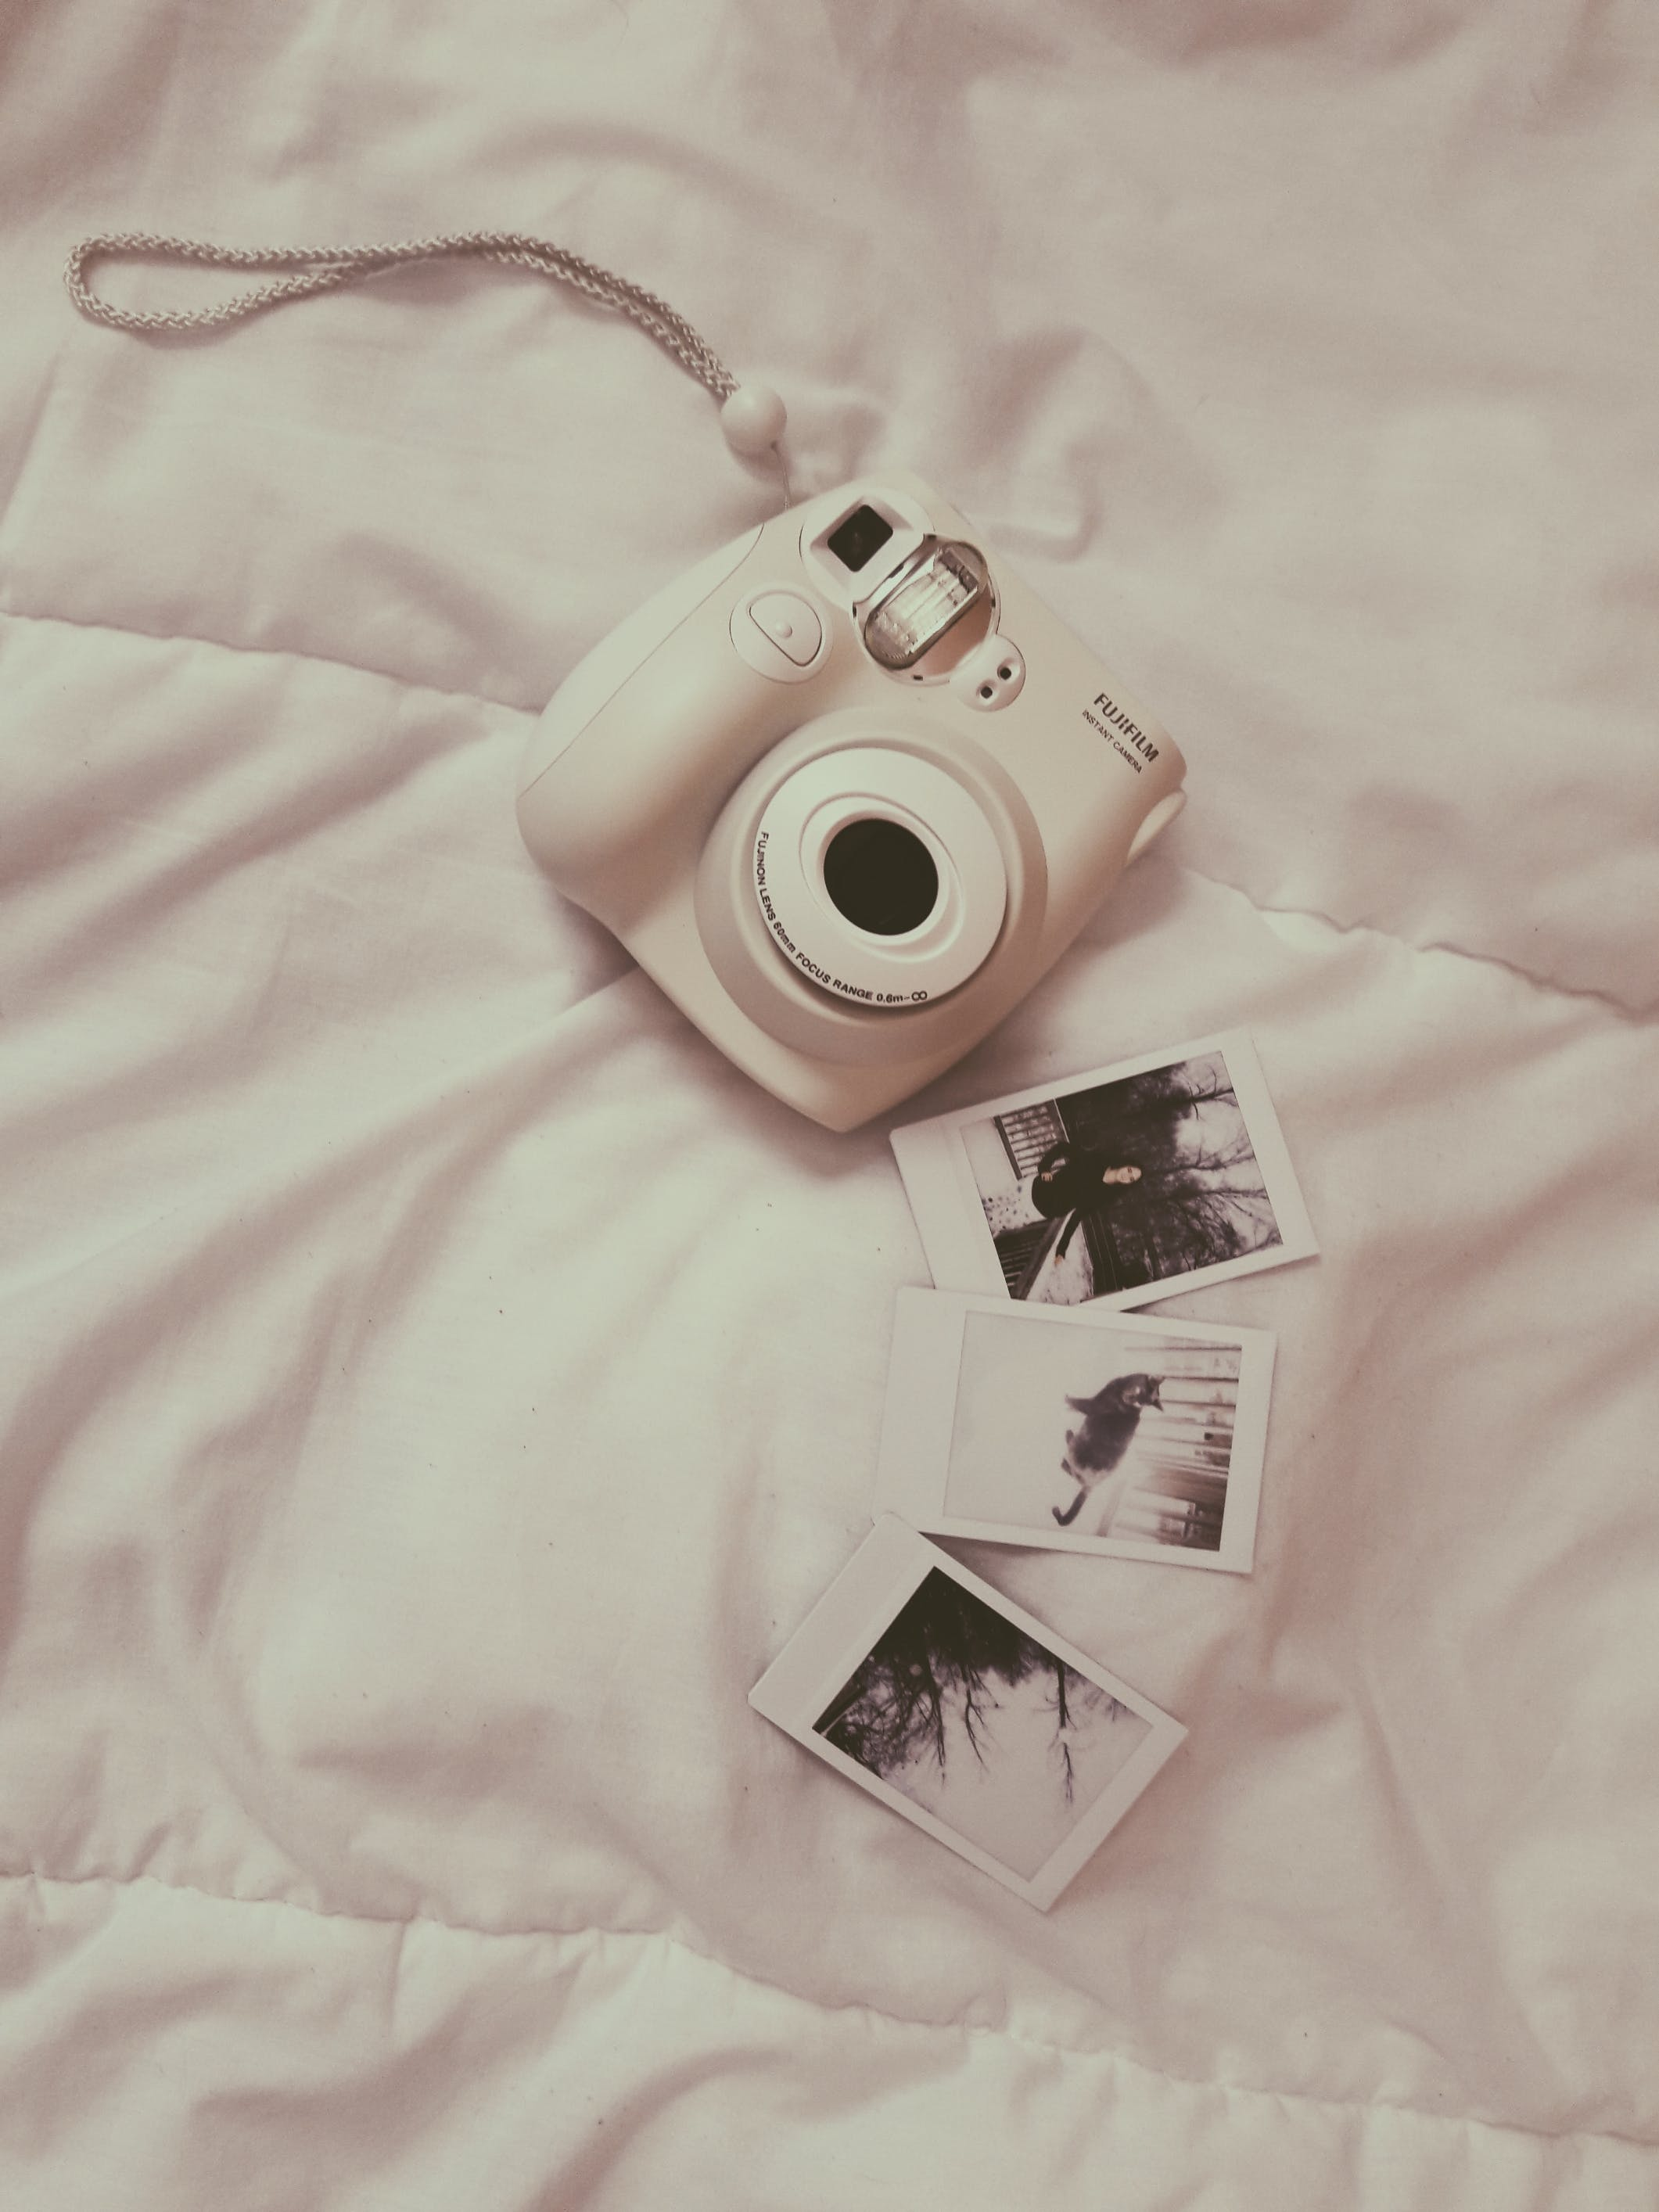 Free stock photo of camera, bed, bedroom, vintage